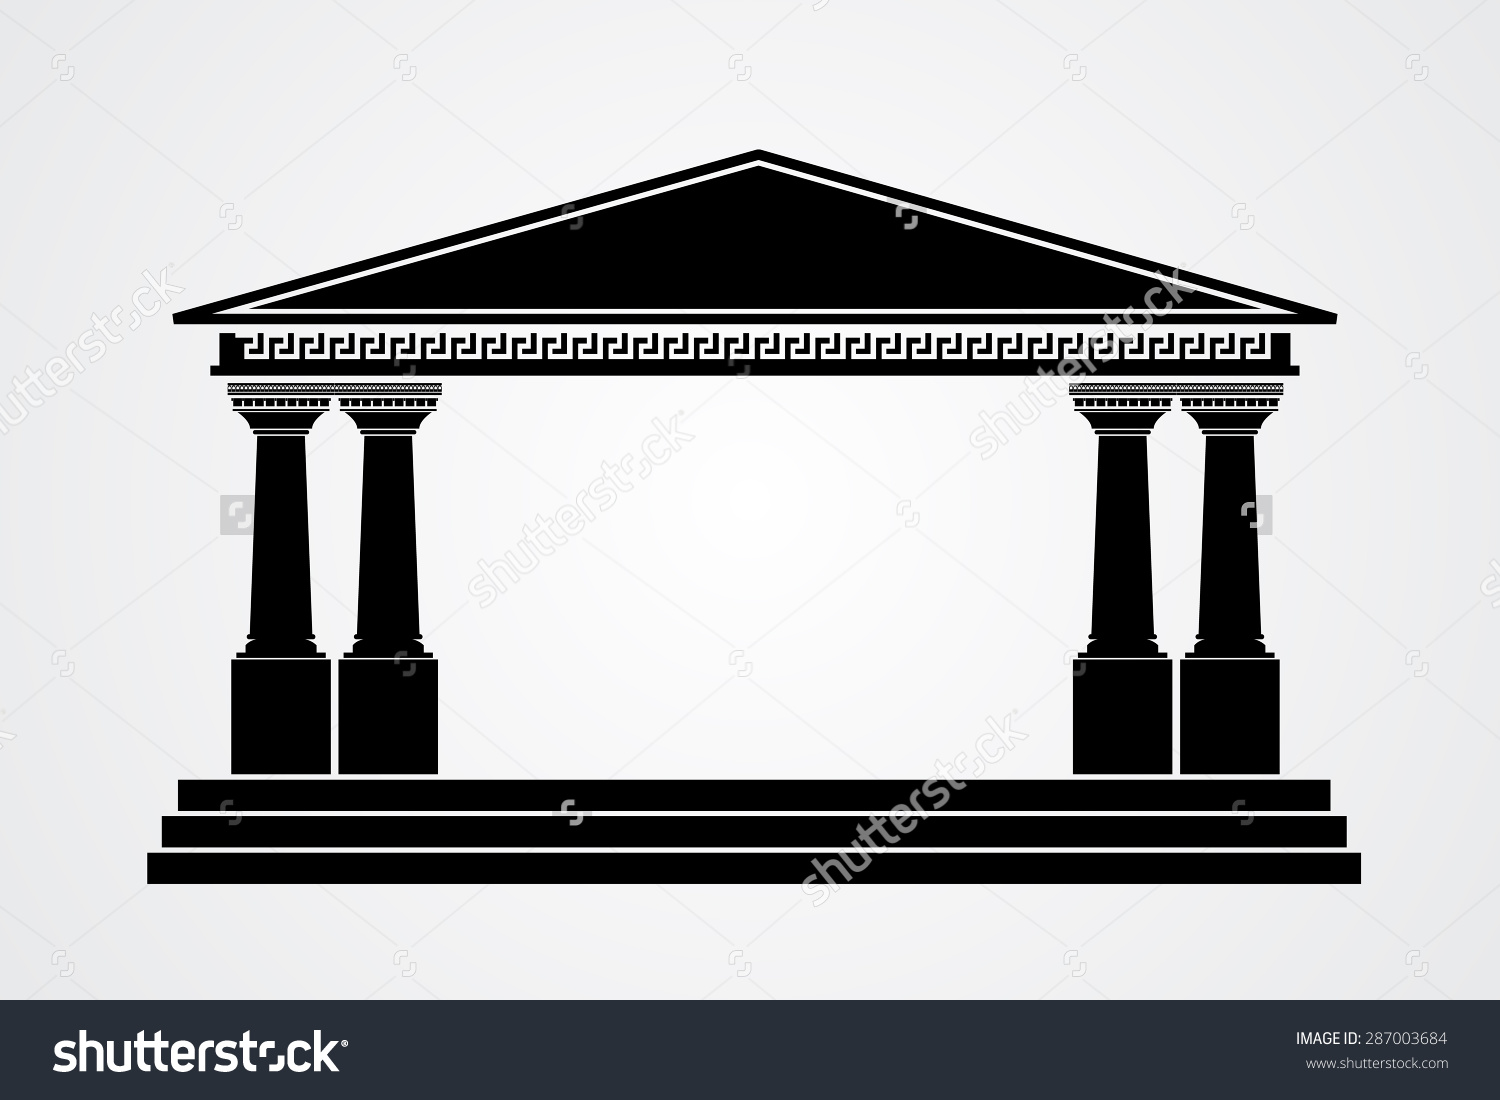 Palace clipart greek #8